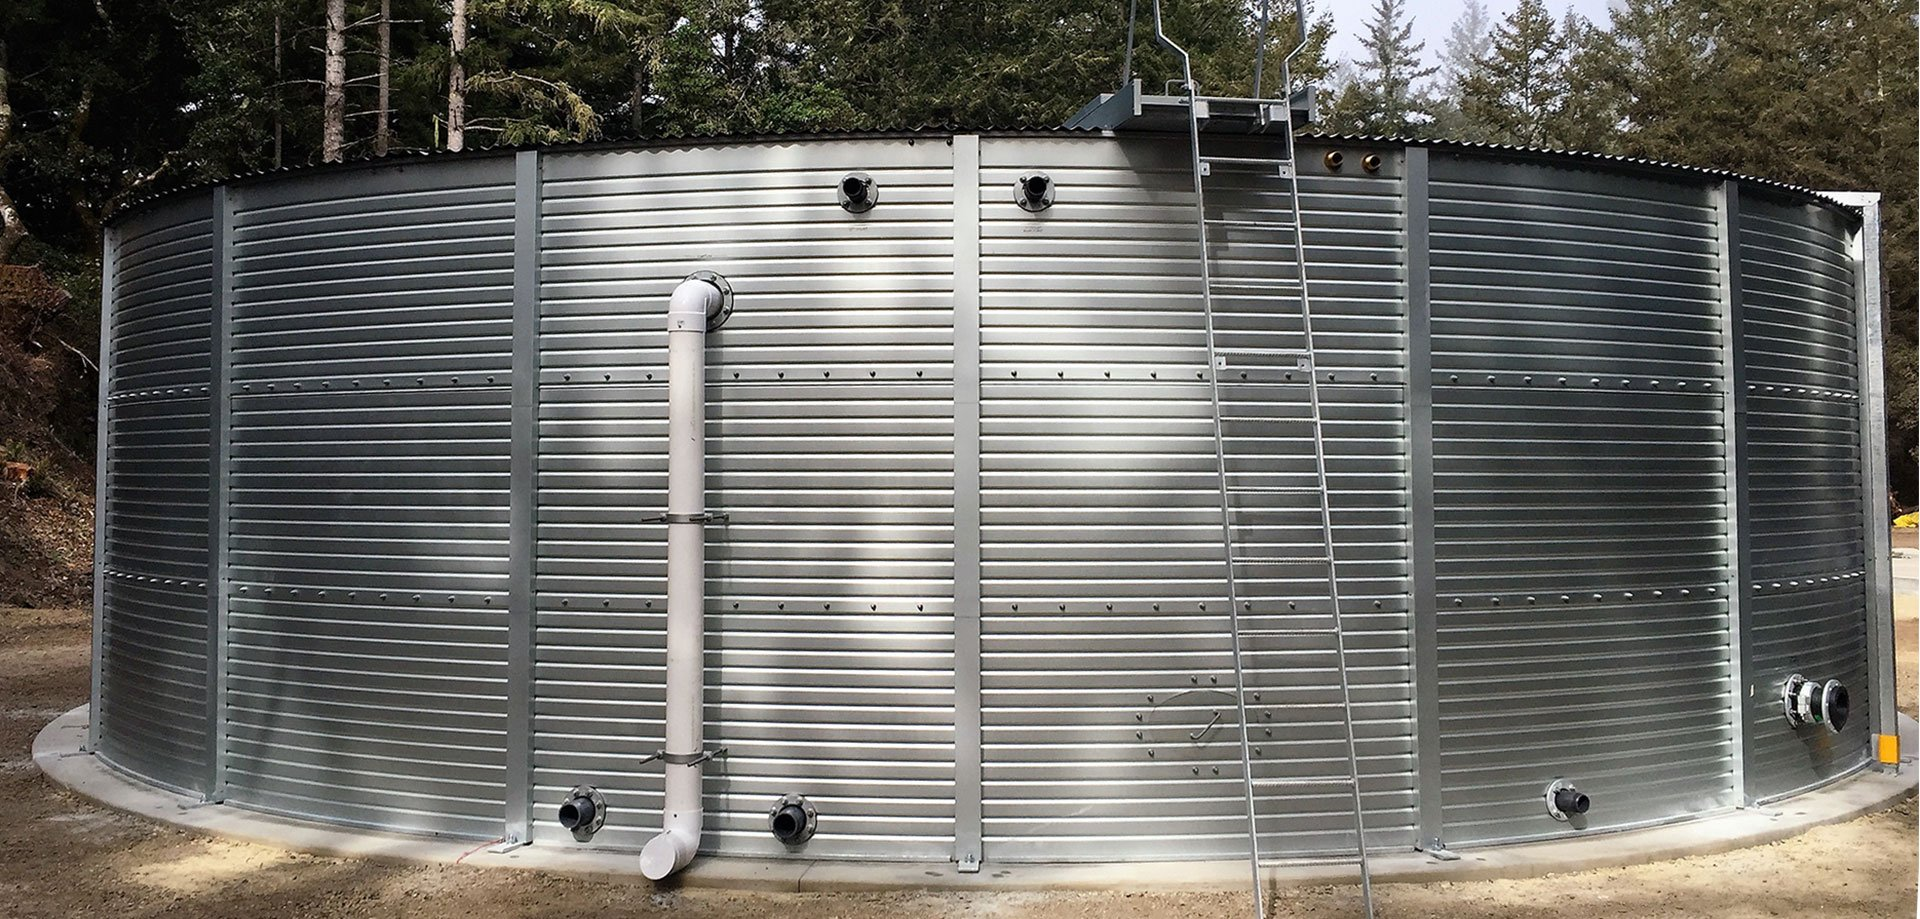 Watermark Rainwater Harvesting Pioneer Water Tanks in California